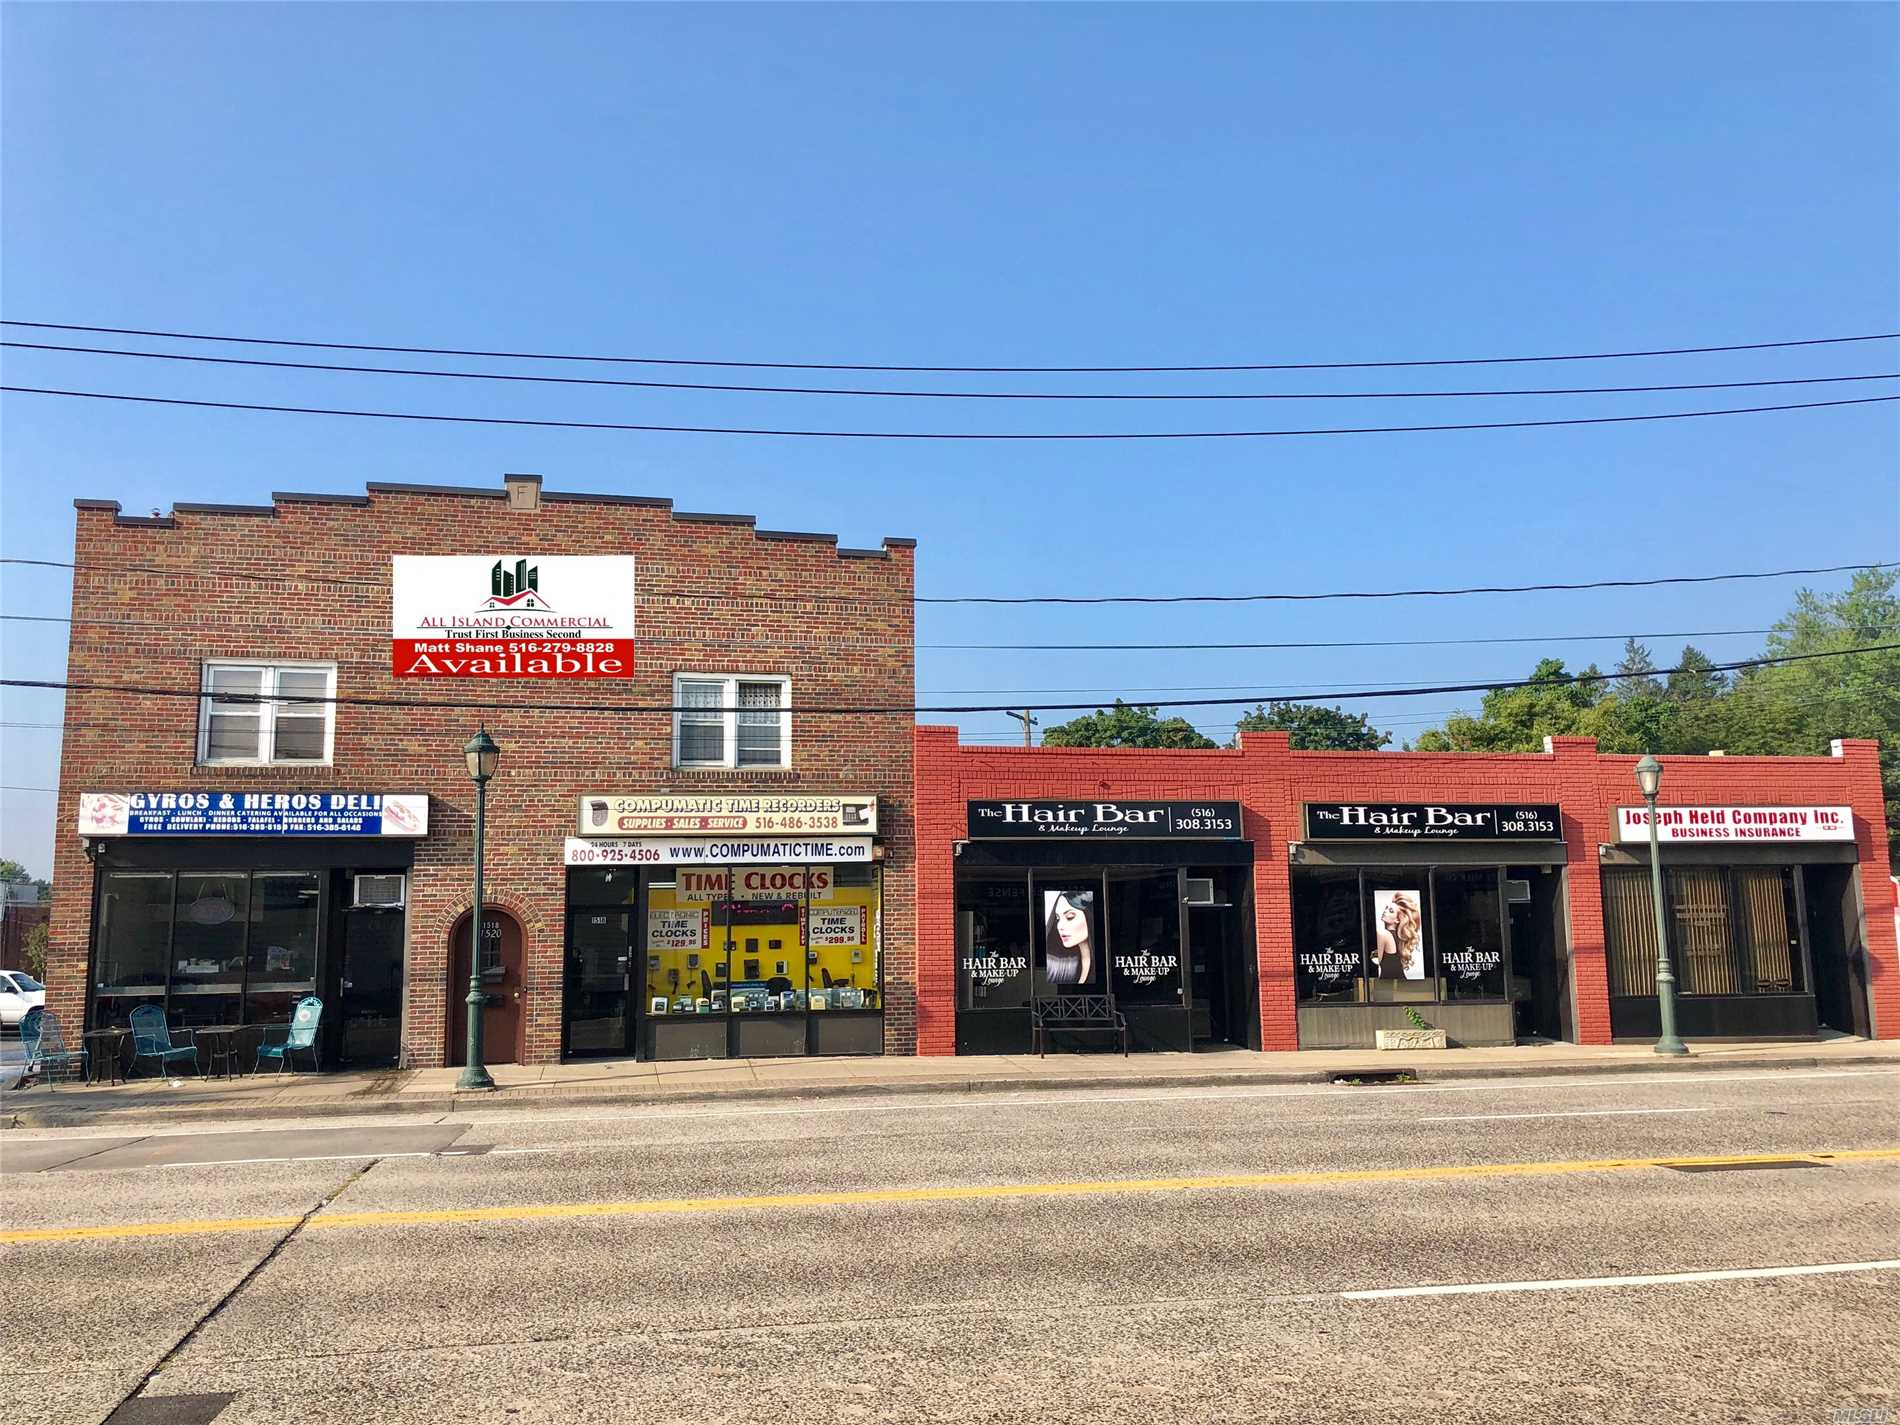 Beautiful 100% Occupied 8 Unit Mixed Use Retail Strip Center For Sale, Asking Only $1, 150, 000 For This Corner Property Located On The Corner Of Busy Intersection - Newbridge & Bellmore Ave. This Property Features Great Tenants, Solid Leases, A Large Private Parking Lot, Excellent Signage, +++!!!